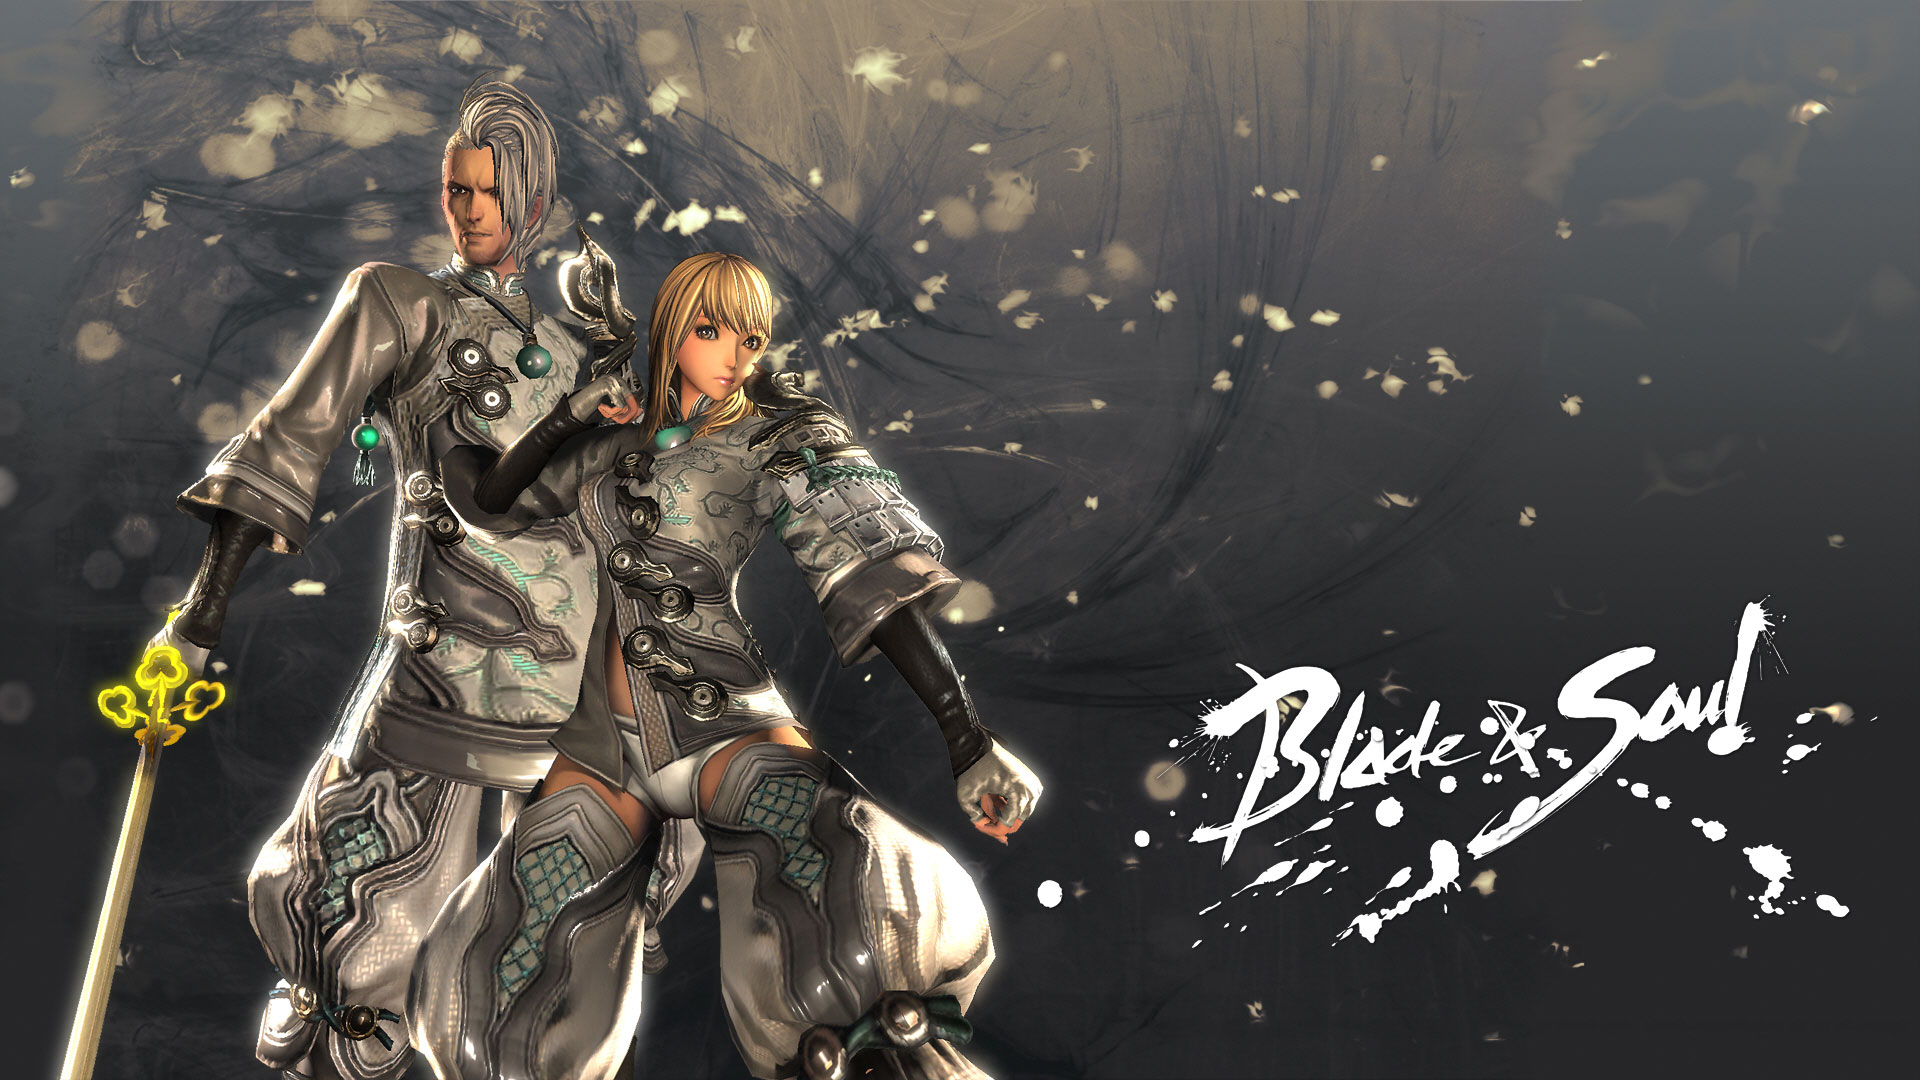 blade and soul wallpaper 4k